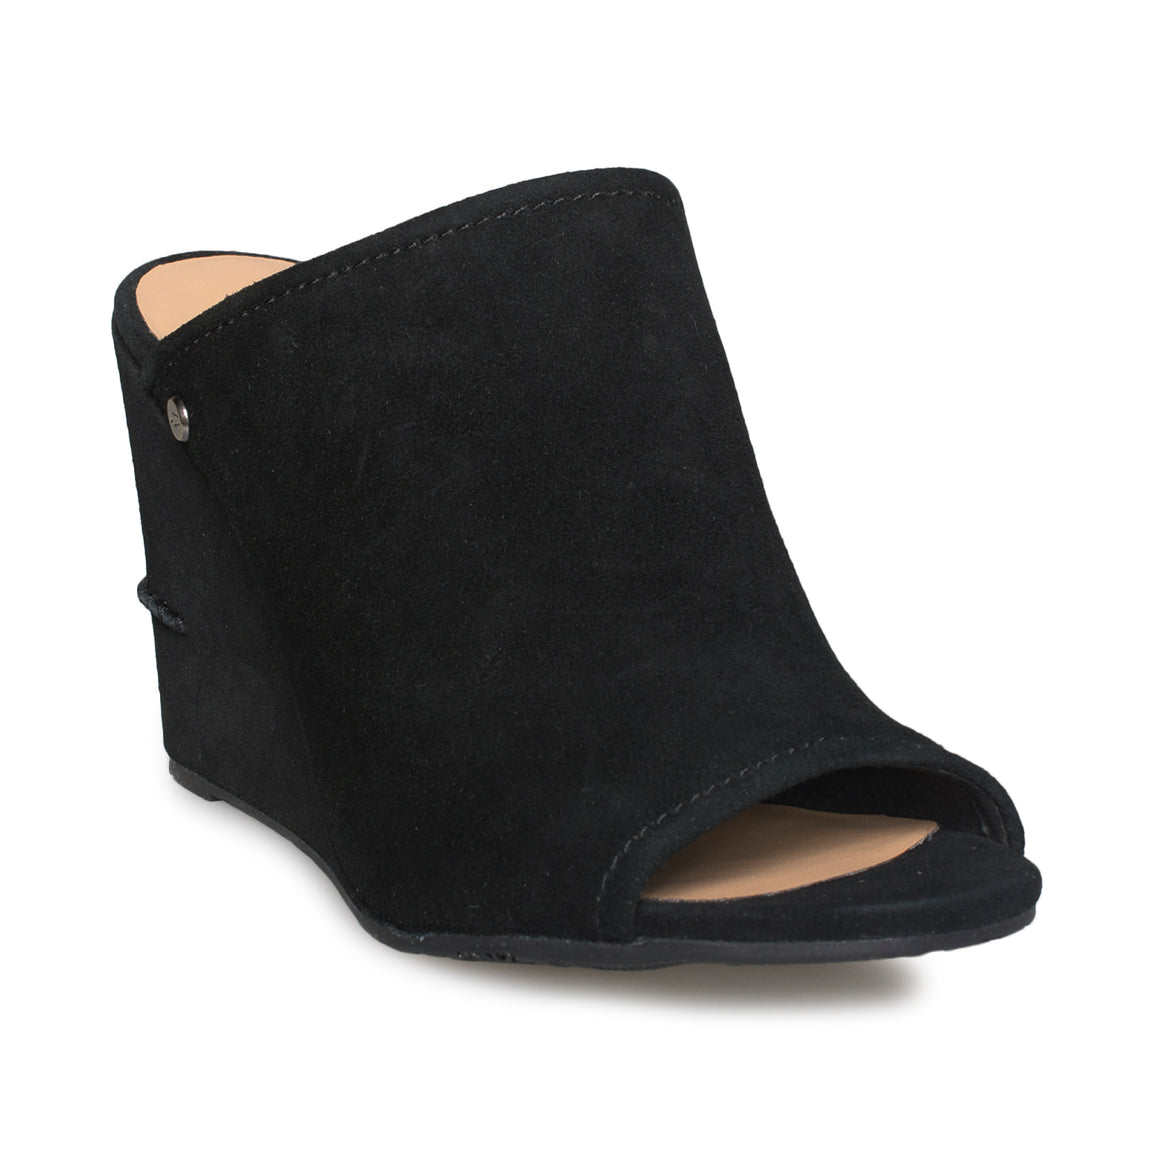 UGG Lively Black Wedges - Women's